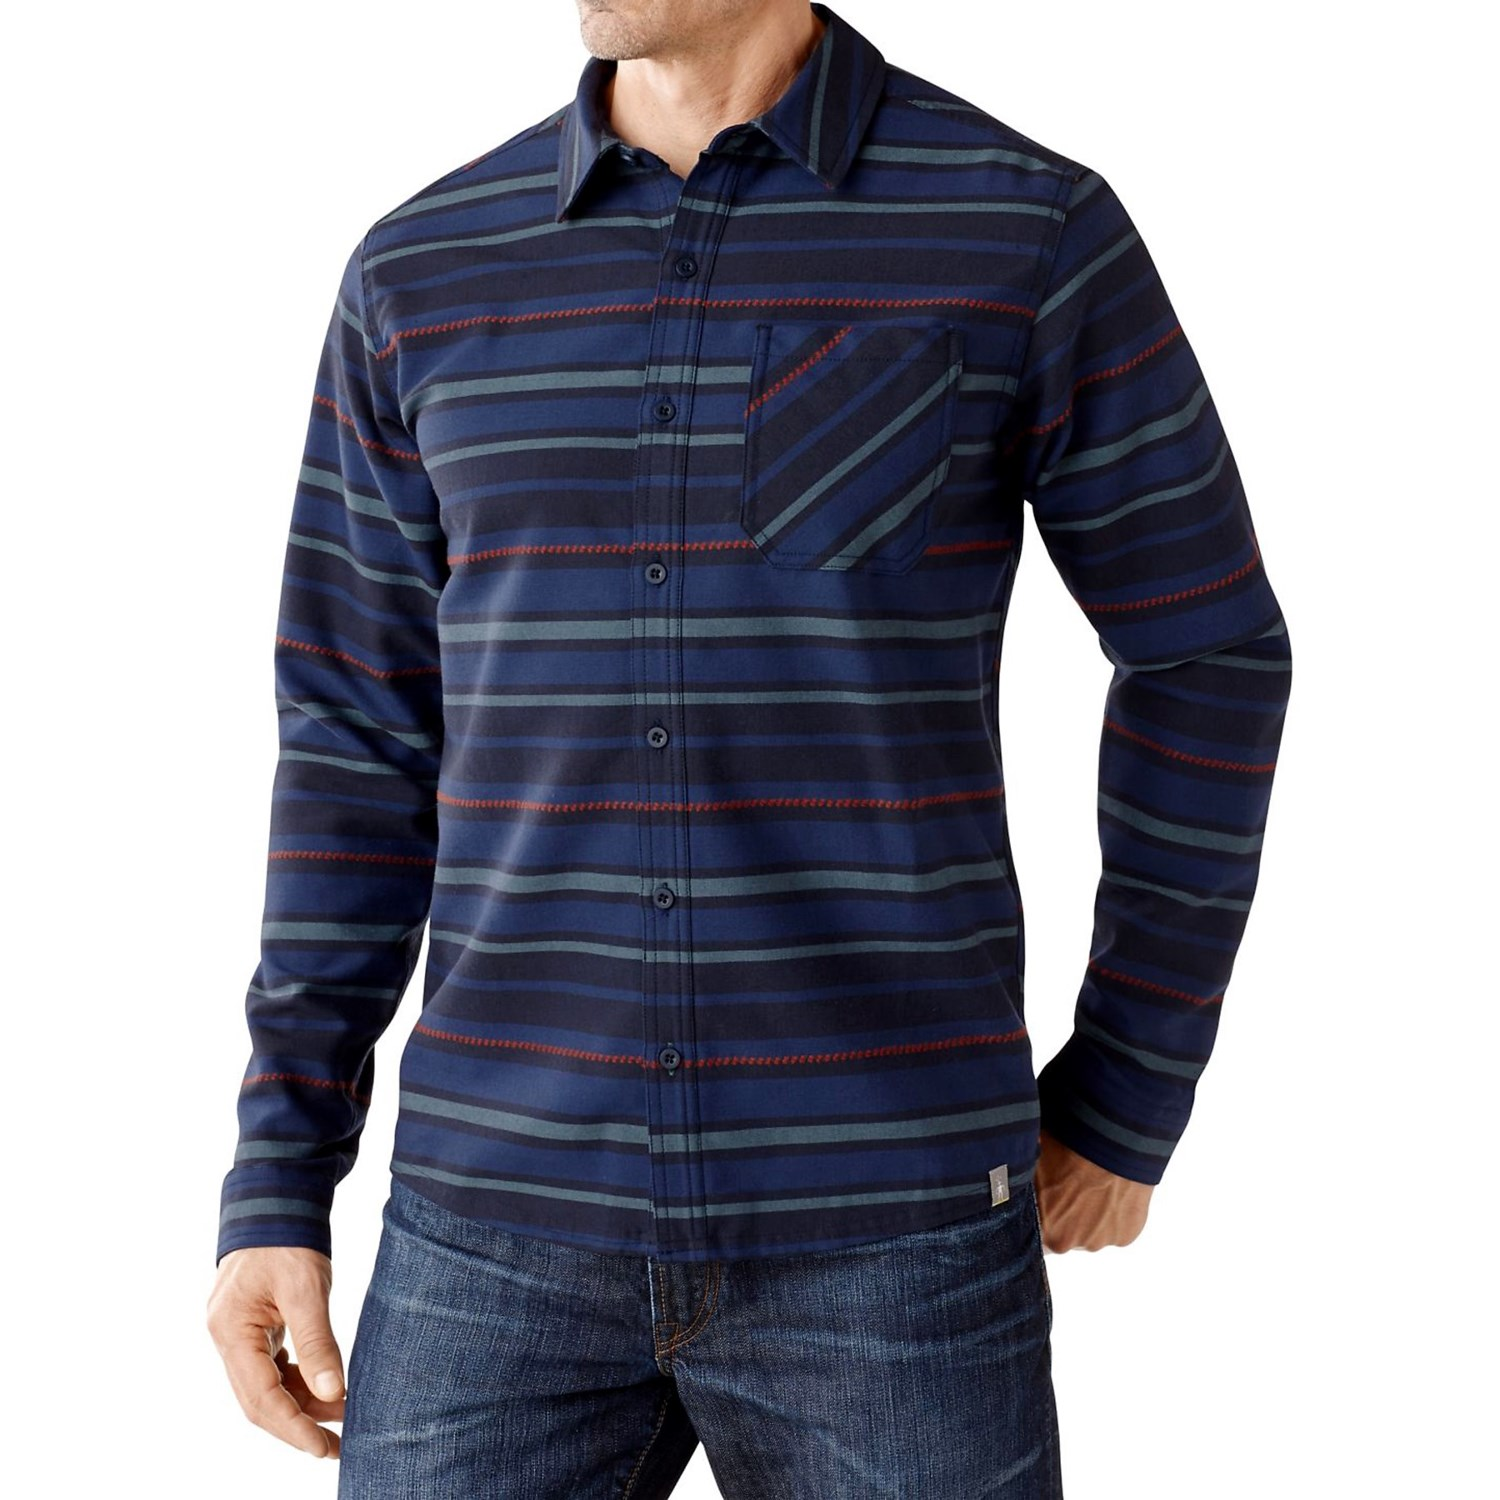 Smartwool Akalii Striped Flannel Shirt For Men